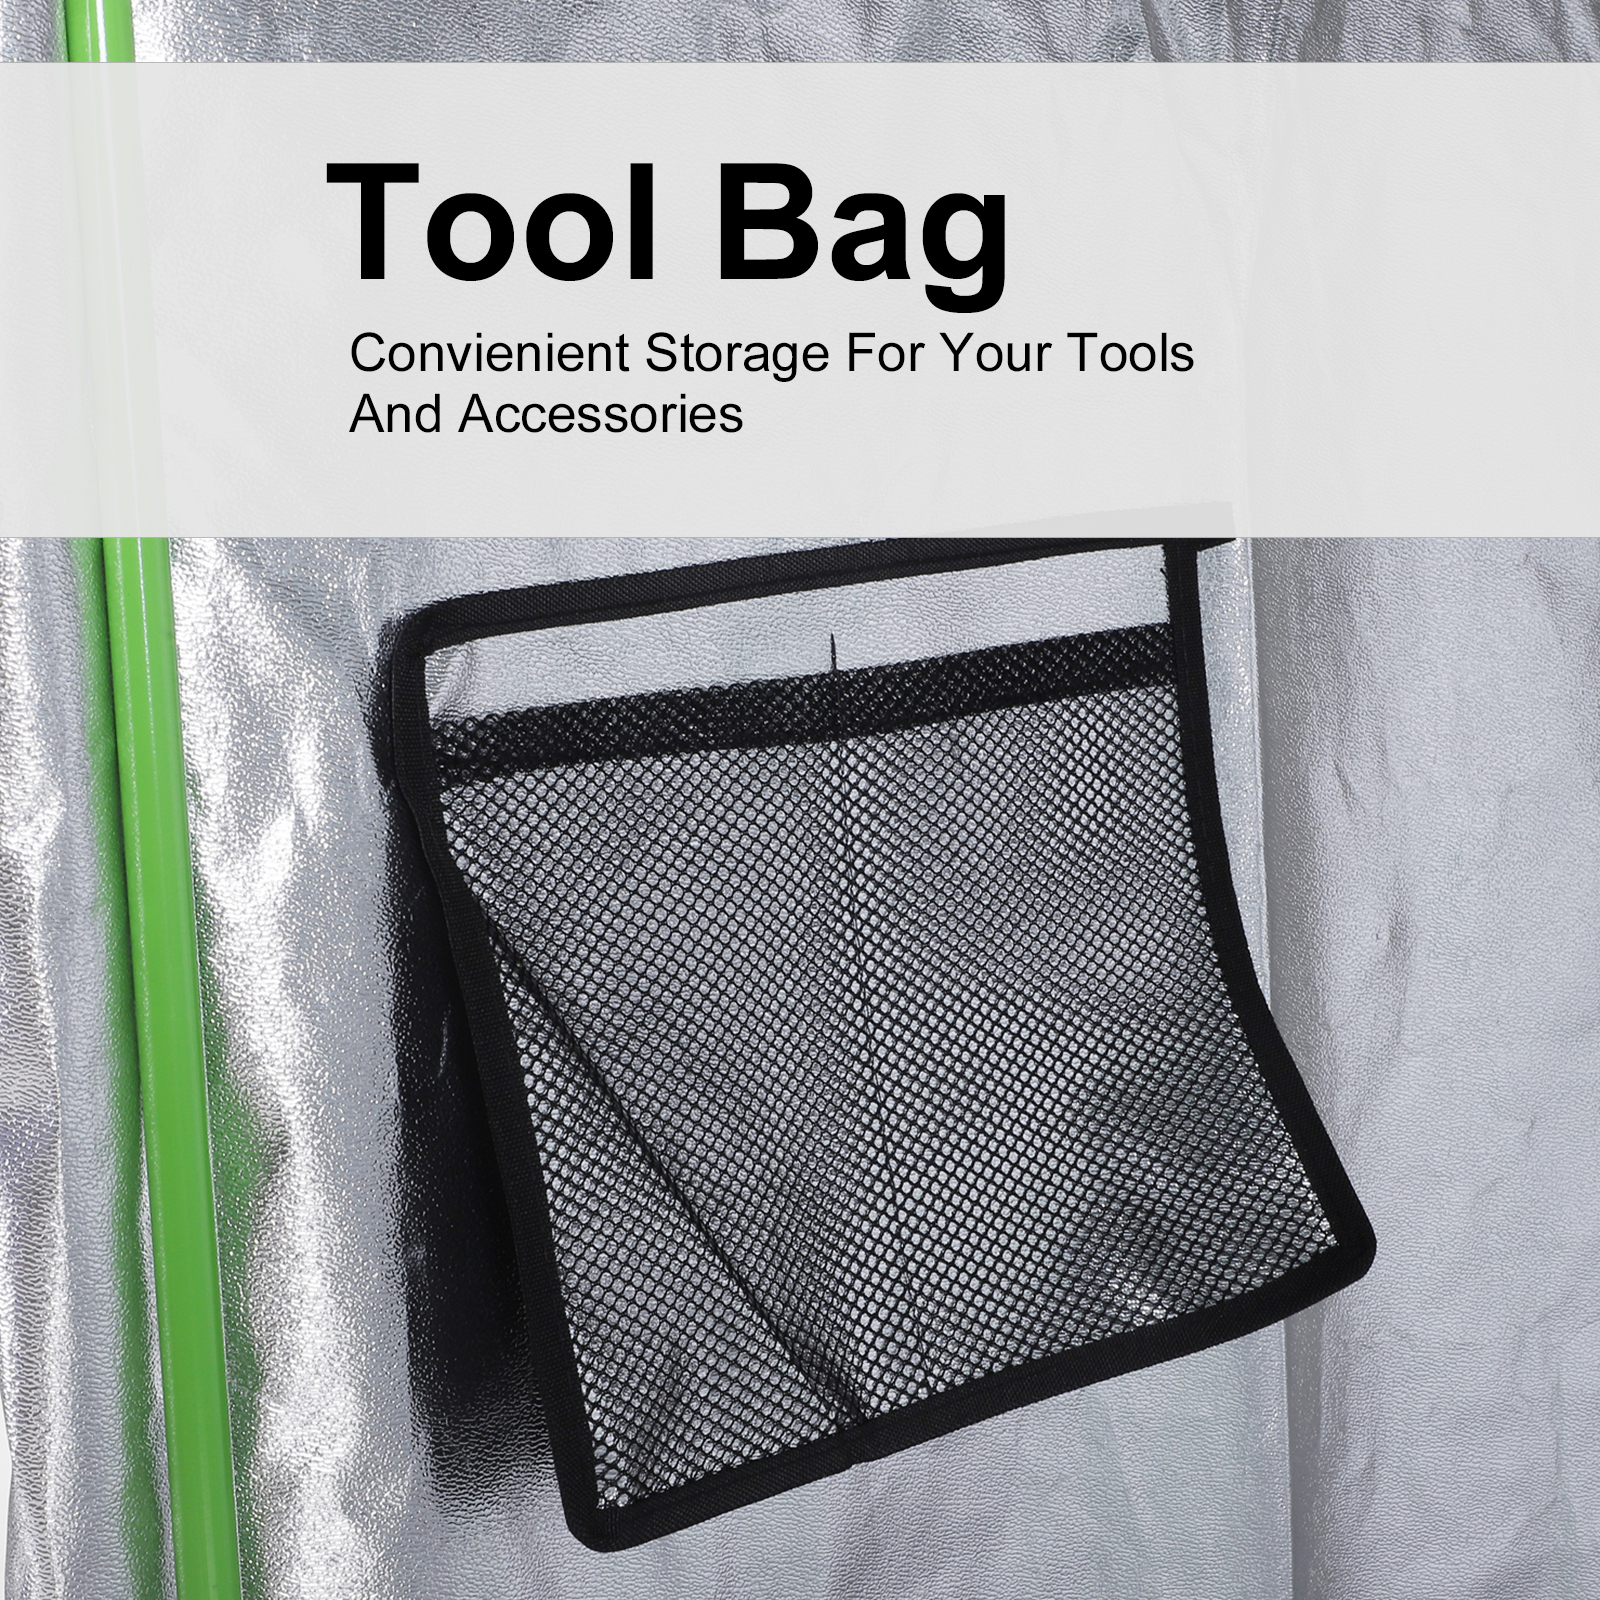 Hydroponic-Plant-Grow-Tent-Indoor-Obeservation-Window-Floor-Tray-Steel-Pole-600D thumbnail 28